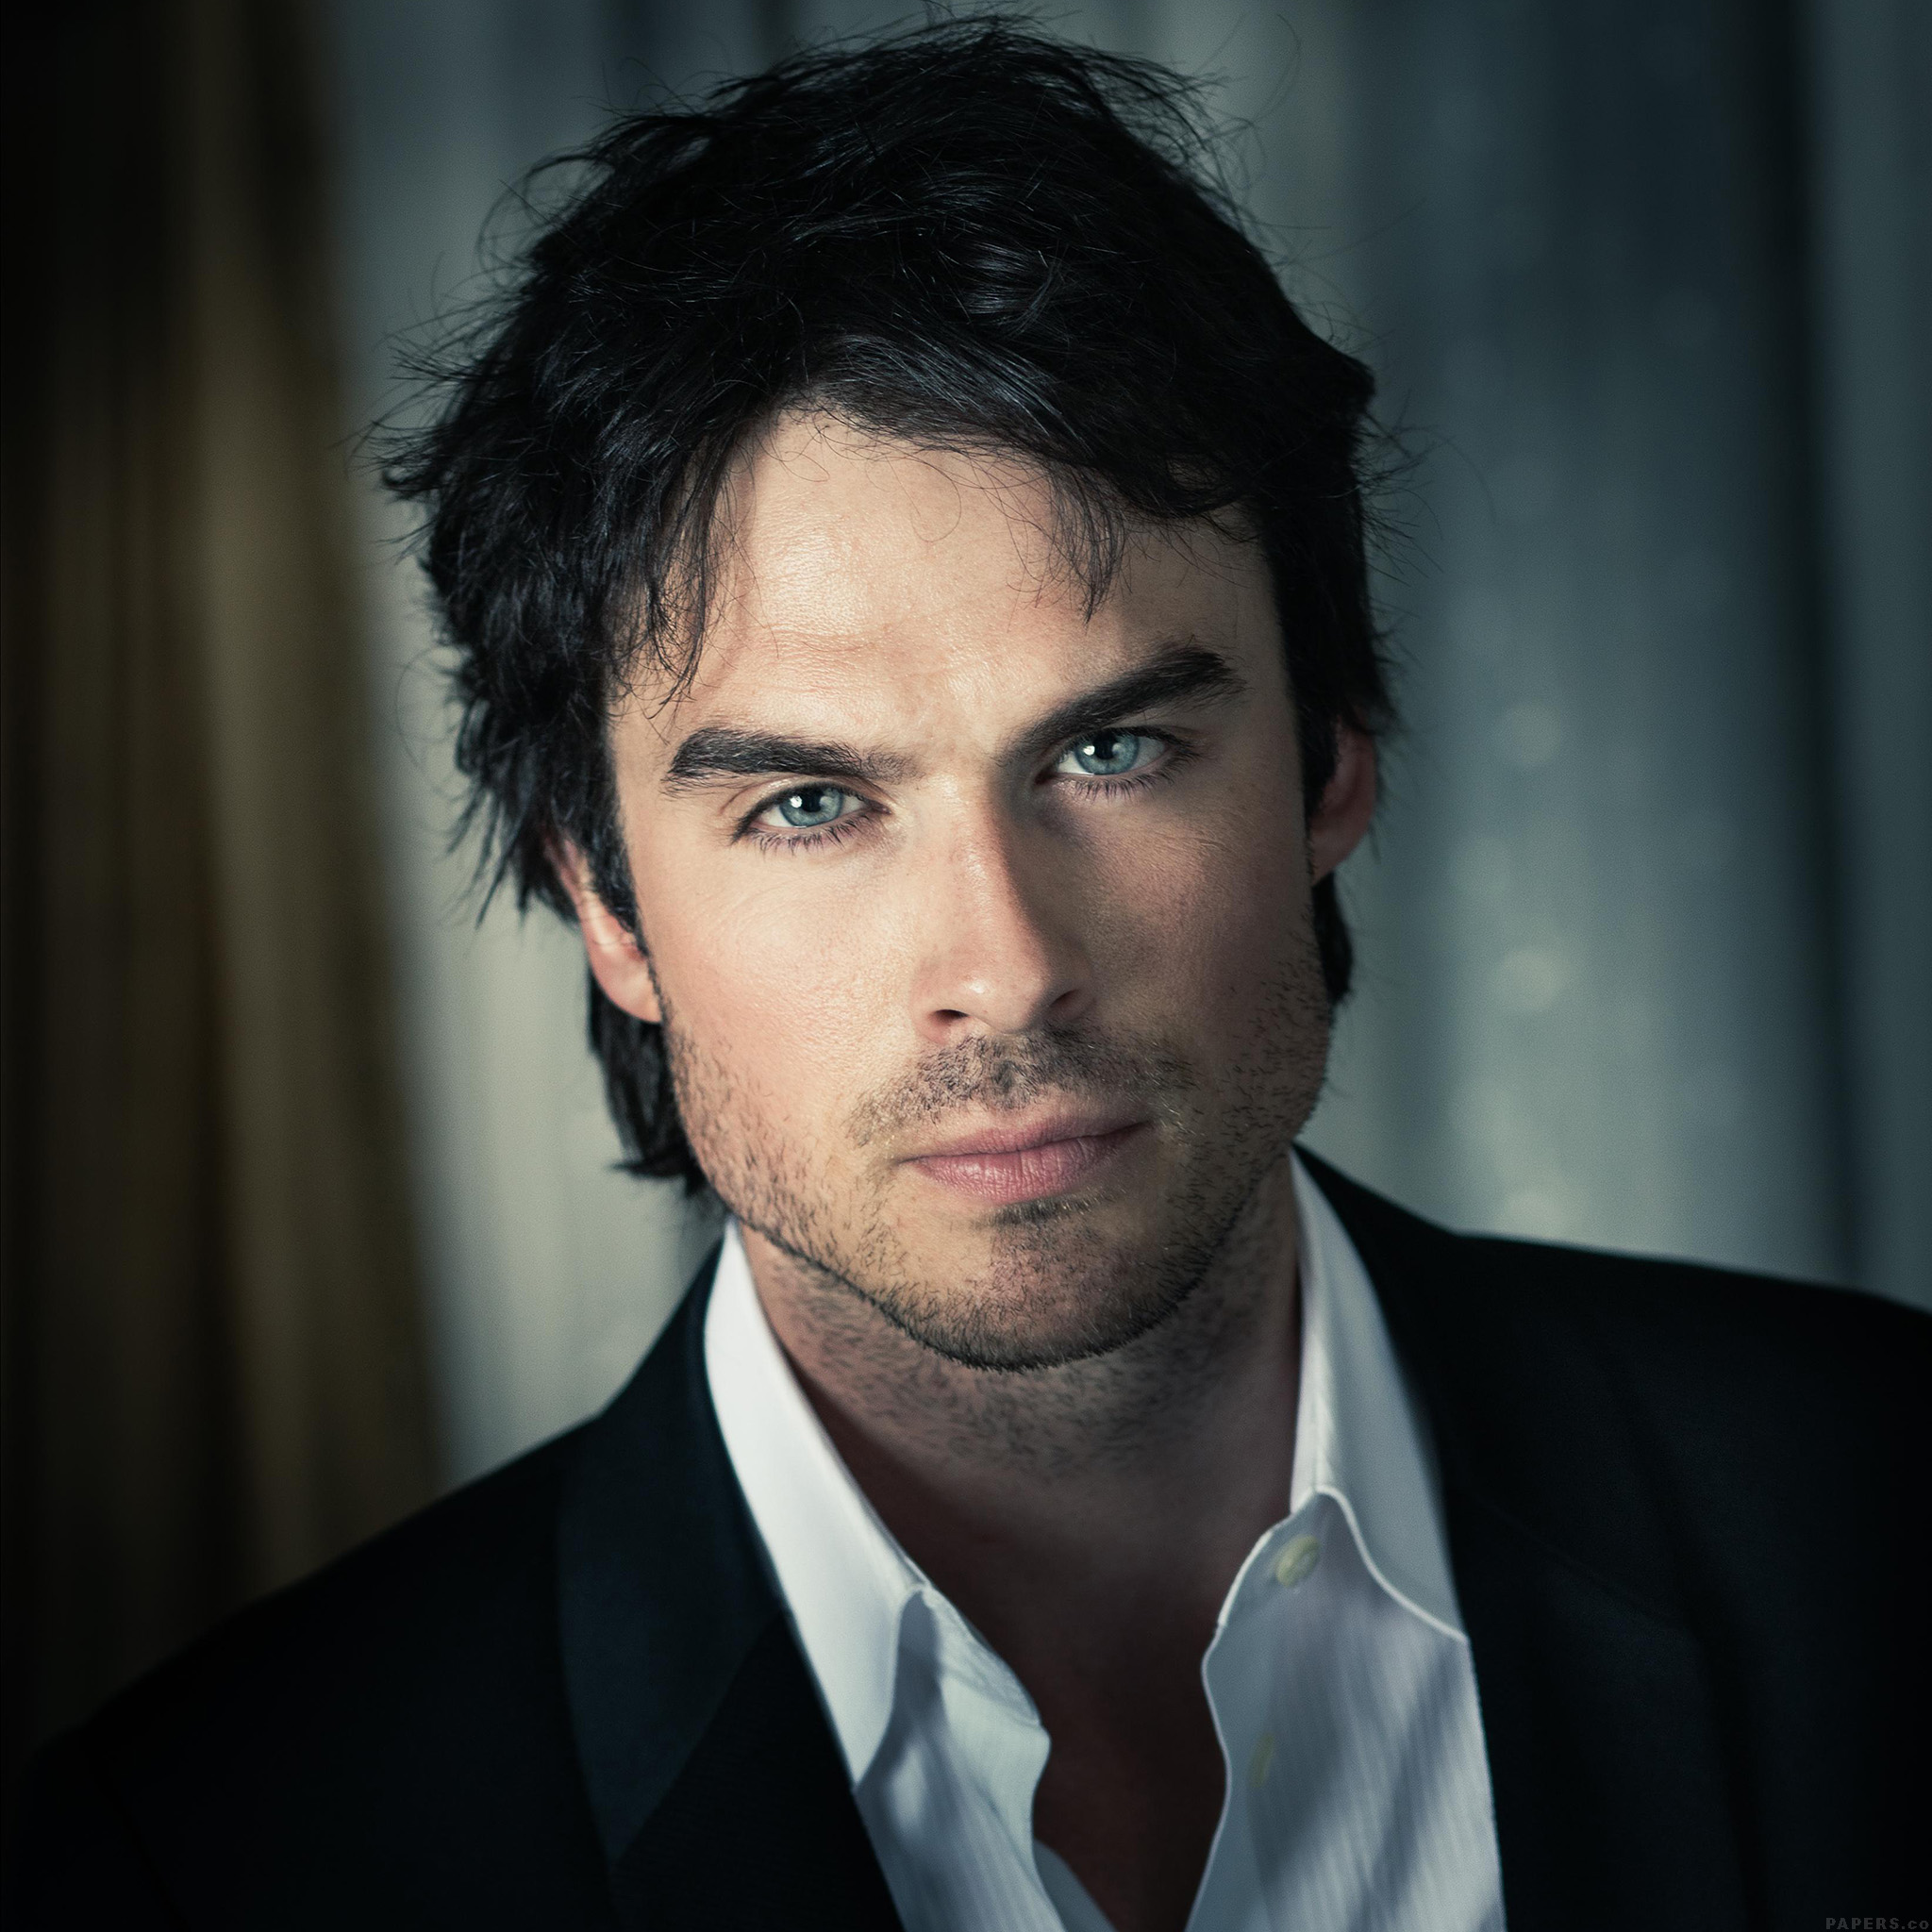 Winter Wallpaper For Iphone 4 He05 Ian Somerhalder Actor Model Celebrity